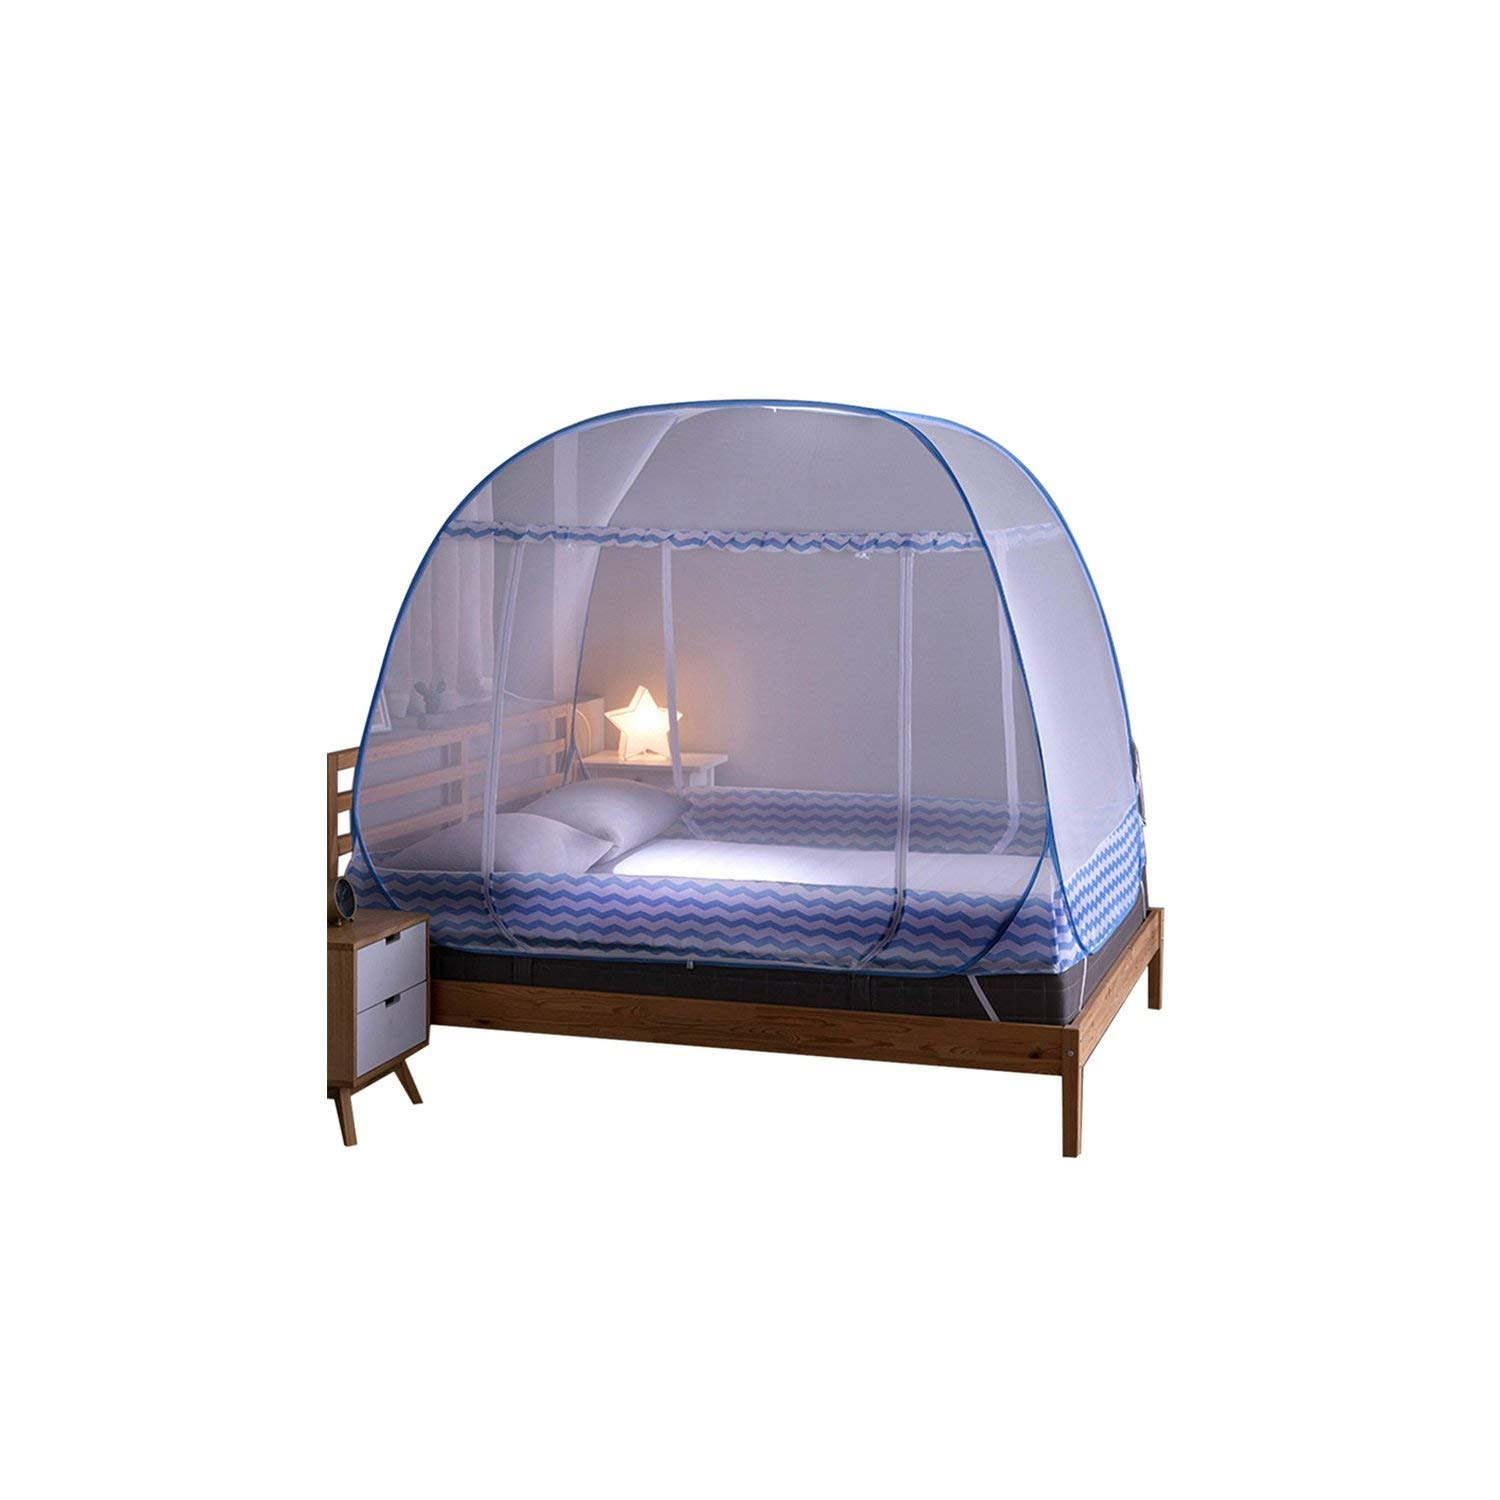 Mosquito Bed Netting Tent Durable Home Decor Student Bunk Breathable Mosquito Net Bed Net Mesh Tent,Blue,L